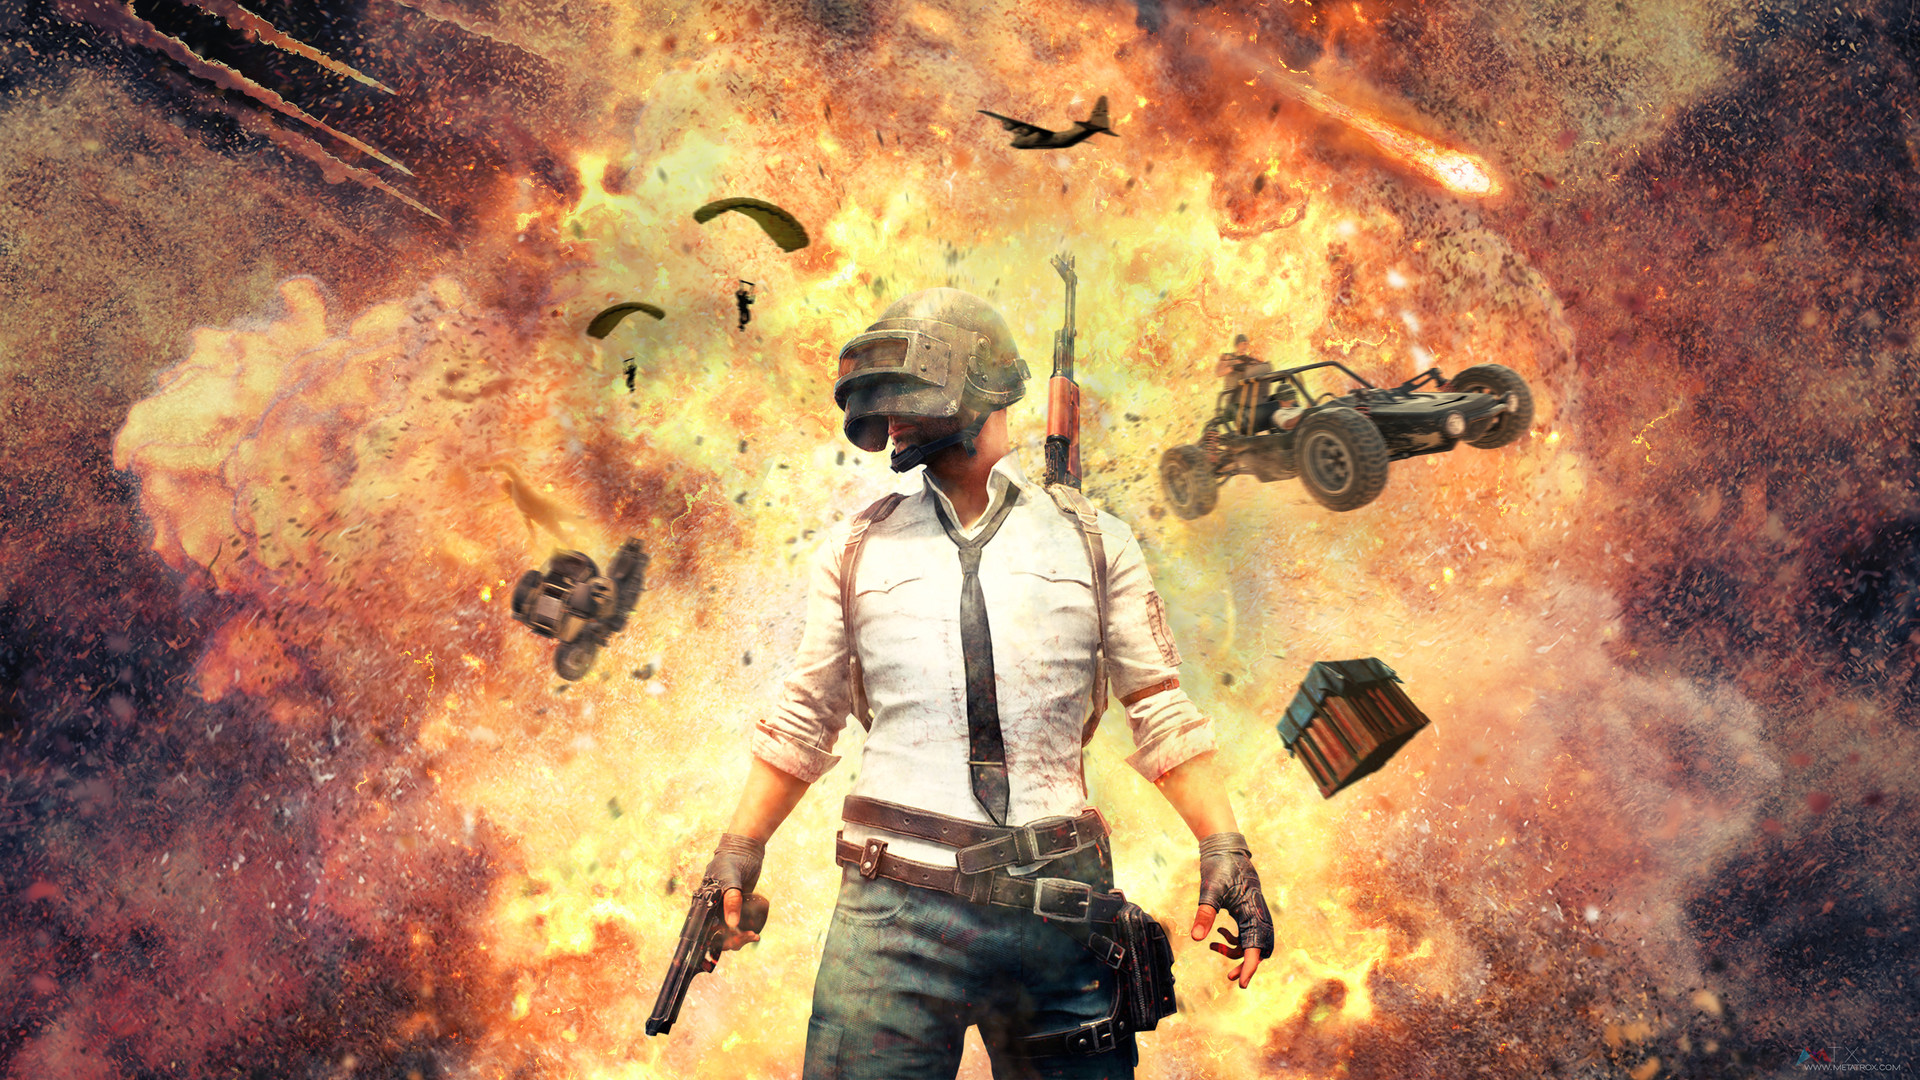 Pubg Hd Wallpaper 1920x1080 Need Iphone 6s Plus: PUBG Wallpapers